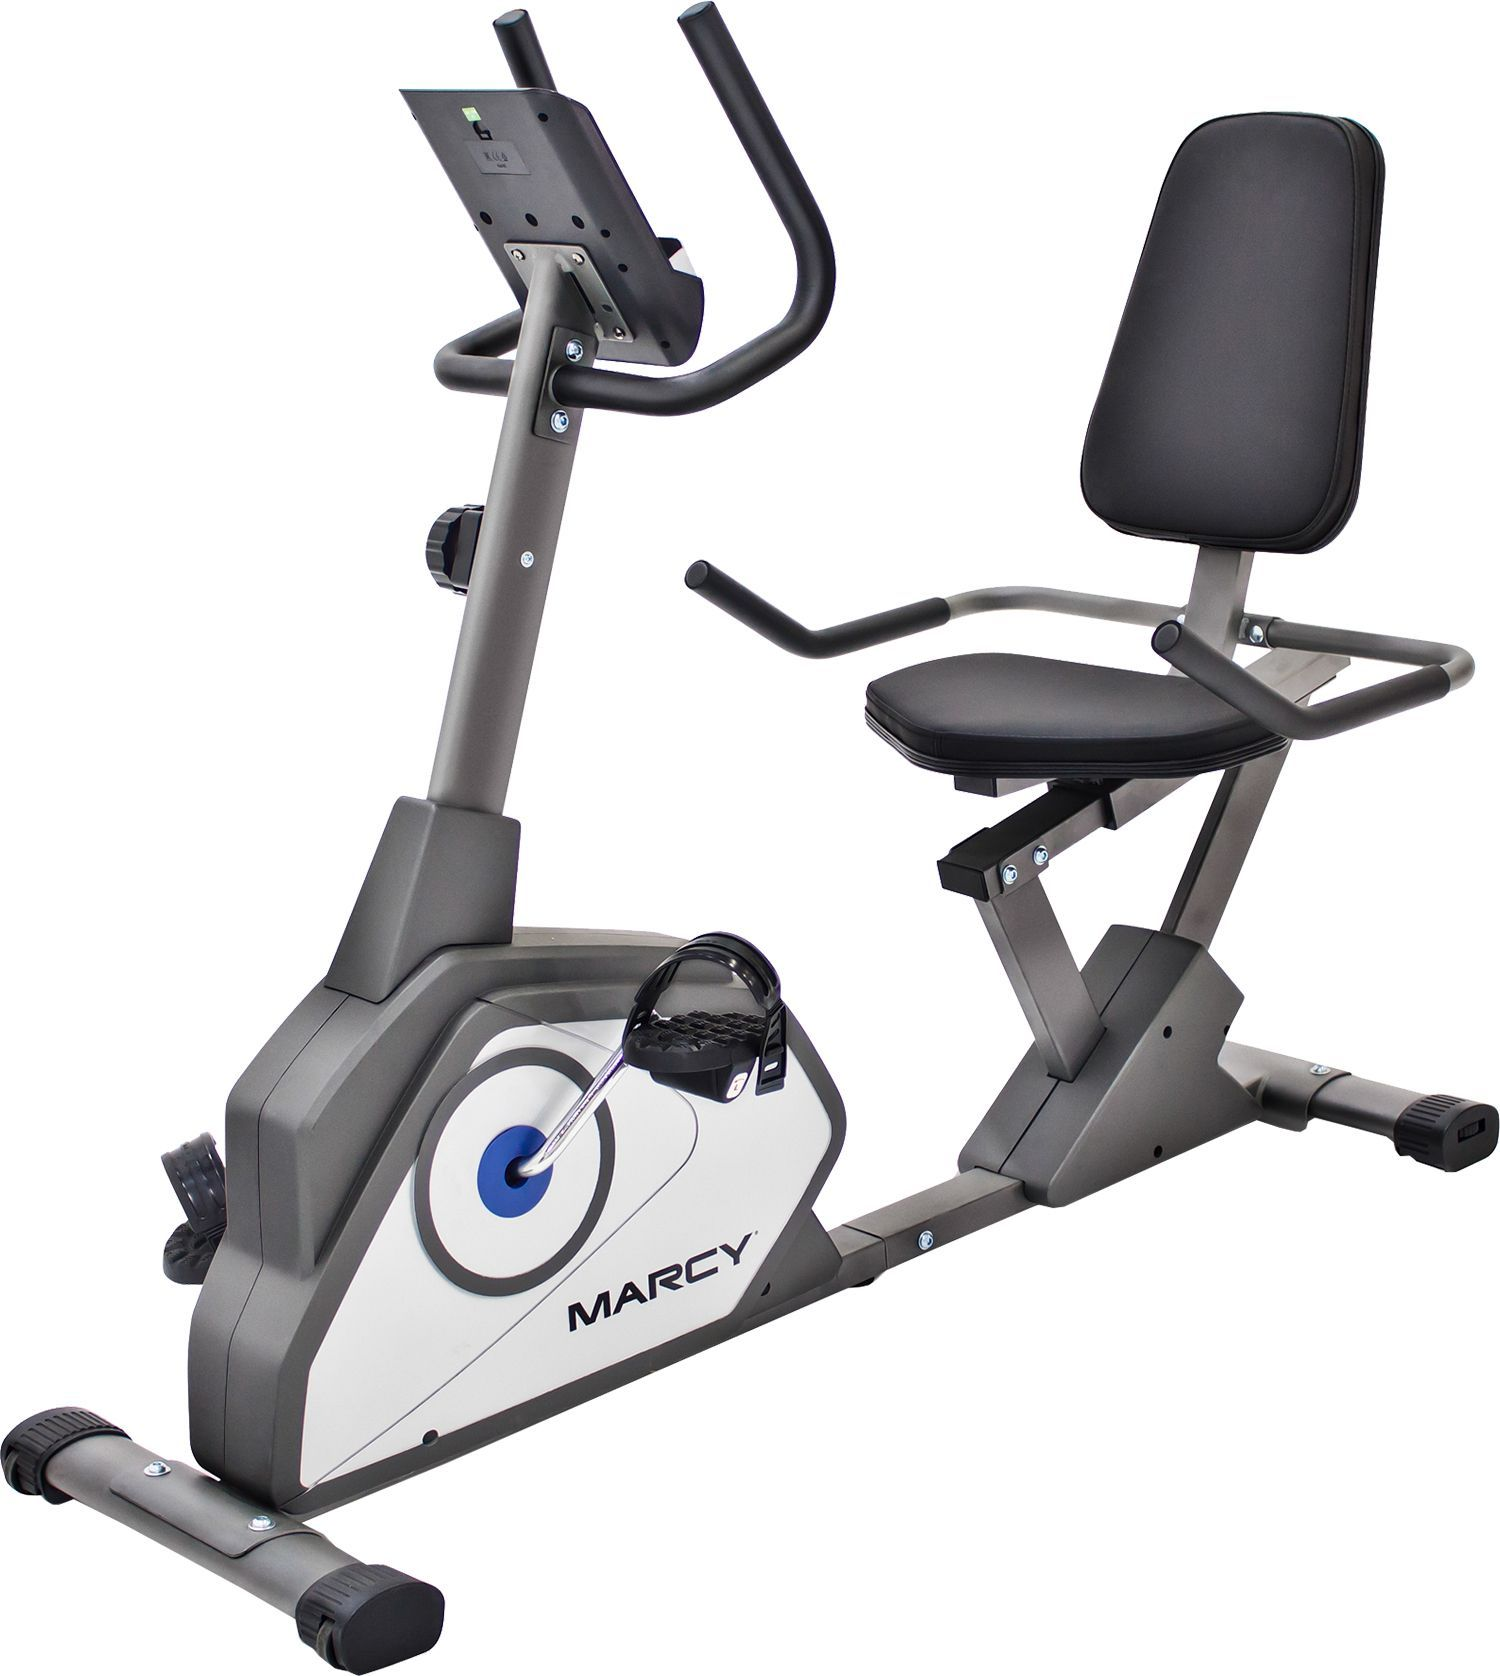 Marcy Recumbent Magnetic Exercise Bike | Products